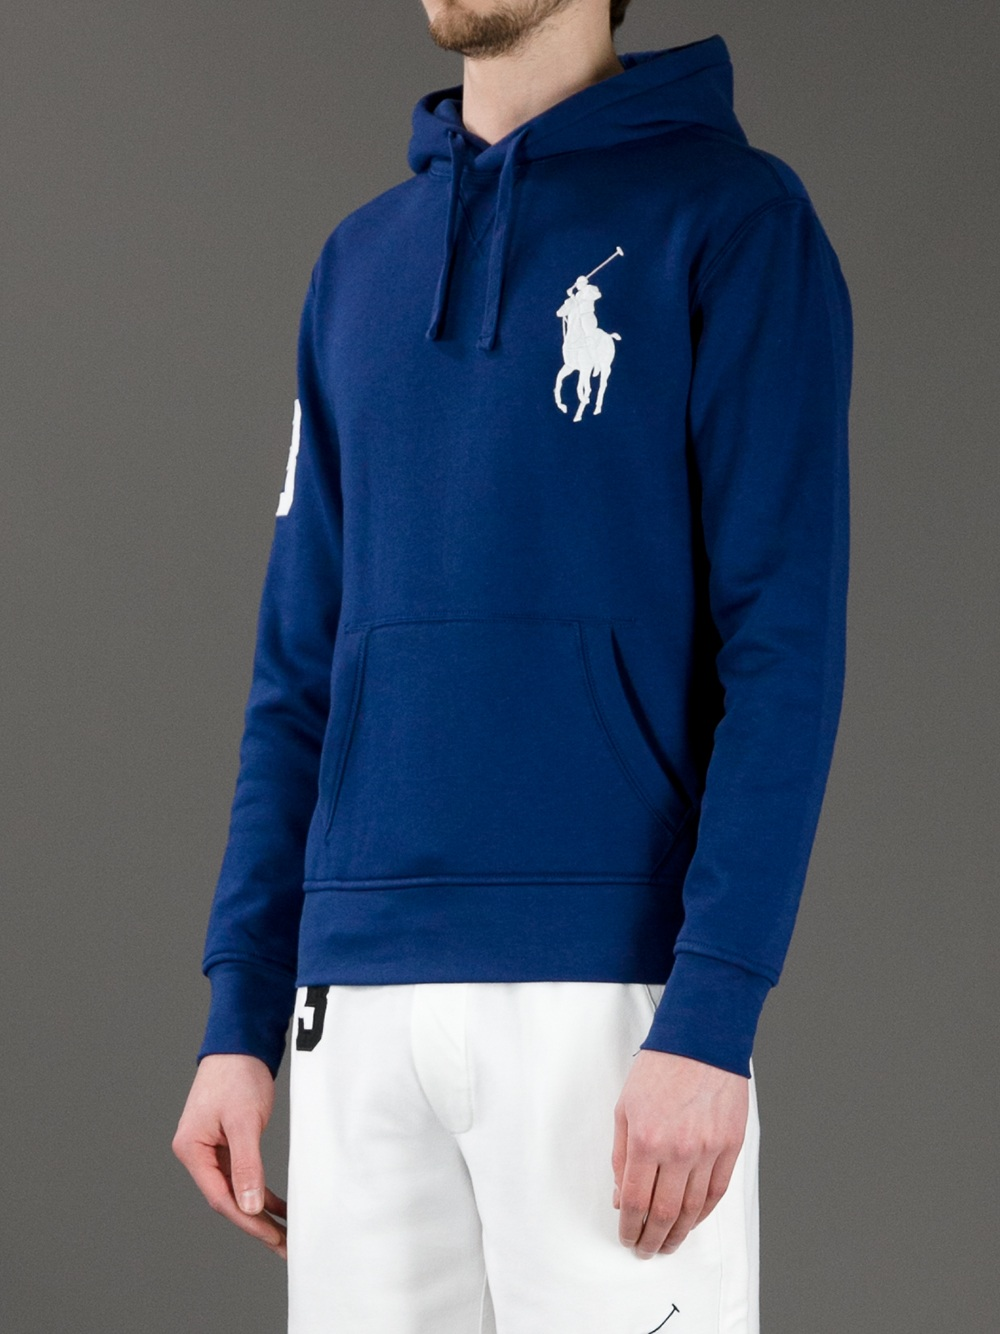 polo ralph lauren logo hoodie in blue for men lyst. Black Bedroom Furniture Sets. Home Design Ideas